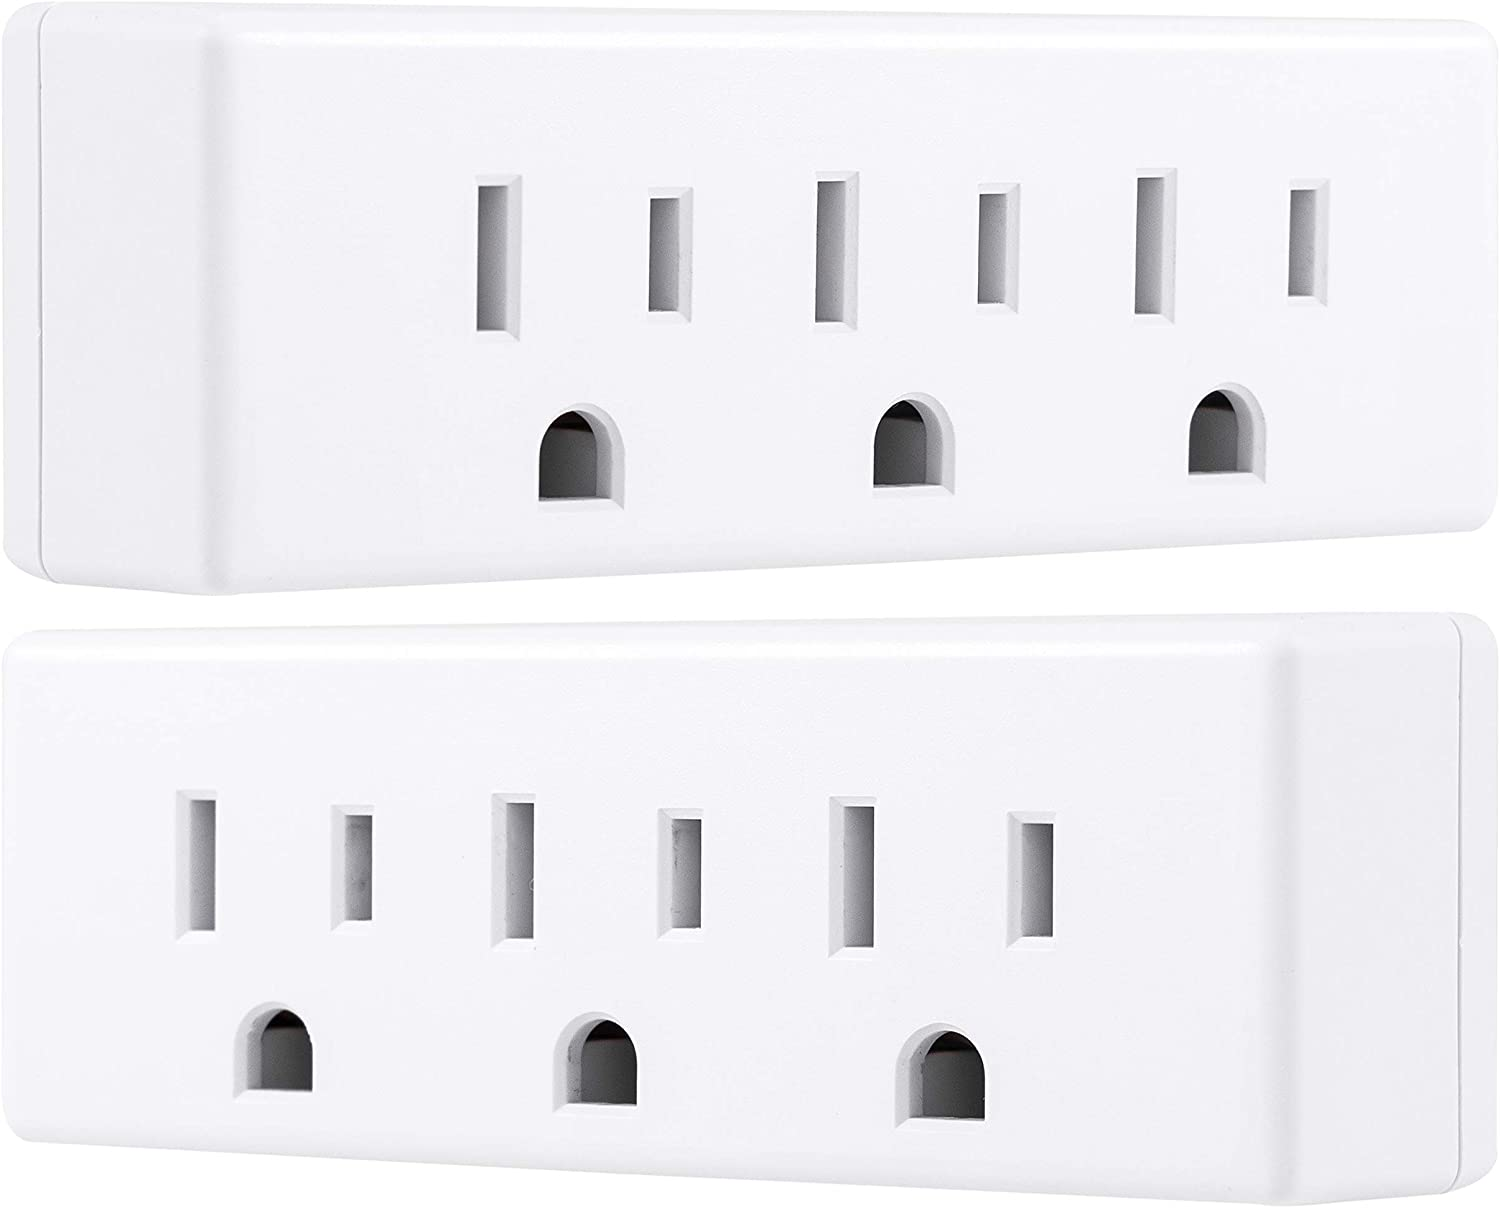 Philips 3 Outlet Adapter, 2 Pack, Power Outlet Splitter, Grounded Wall Tap, Indoor, White, SPS1630W/37